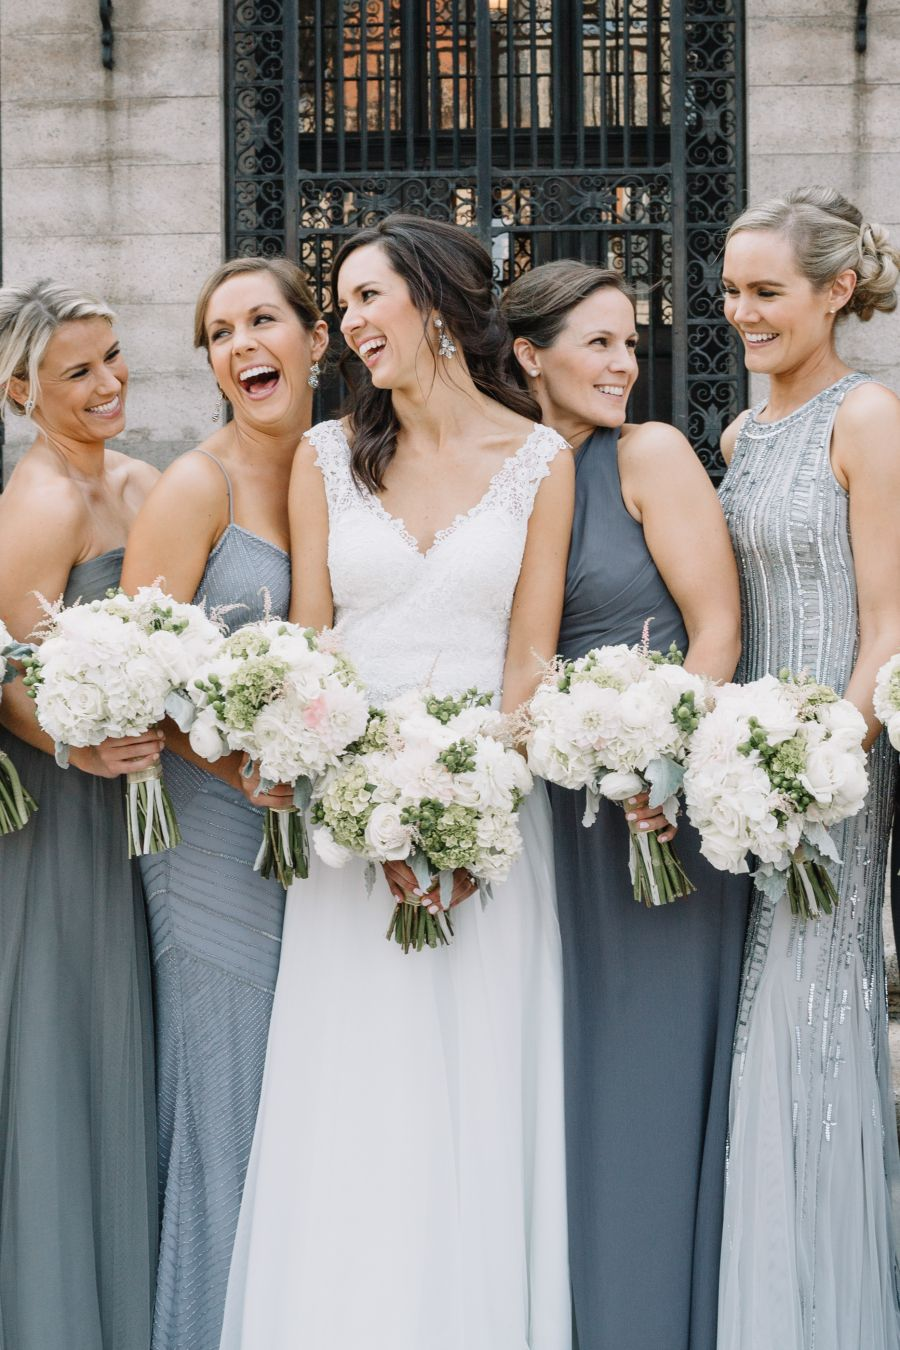 Mismatched bridesmaids in grey for a city wedding gray mismatched bridesmaids in grey for a city wedding ombrellifo Choice Image